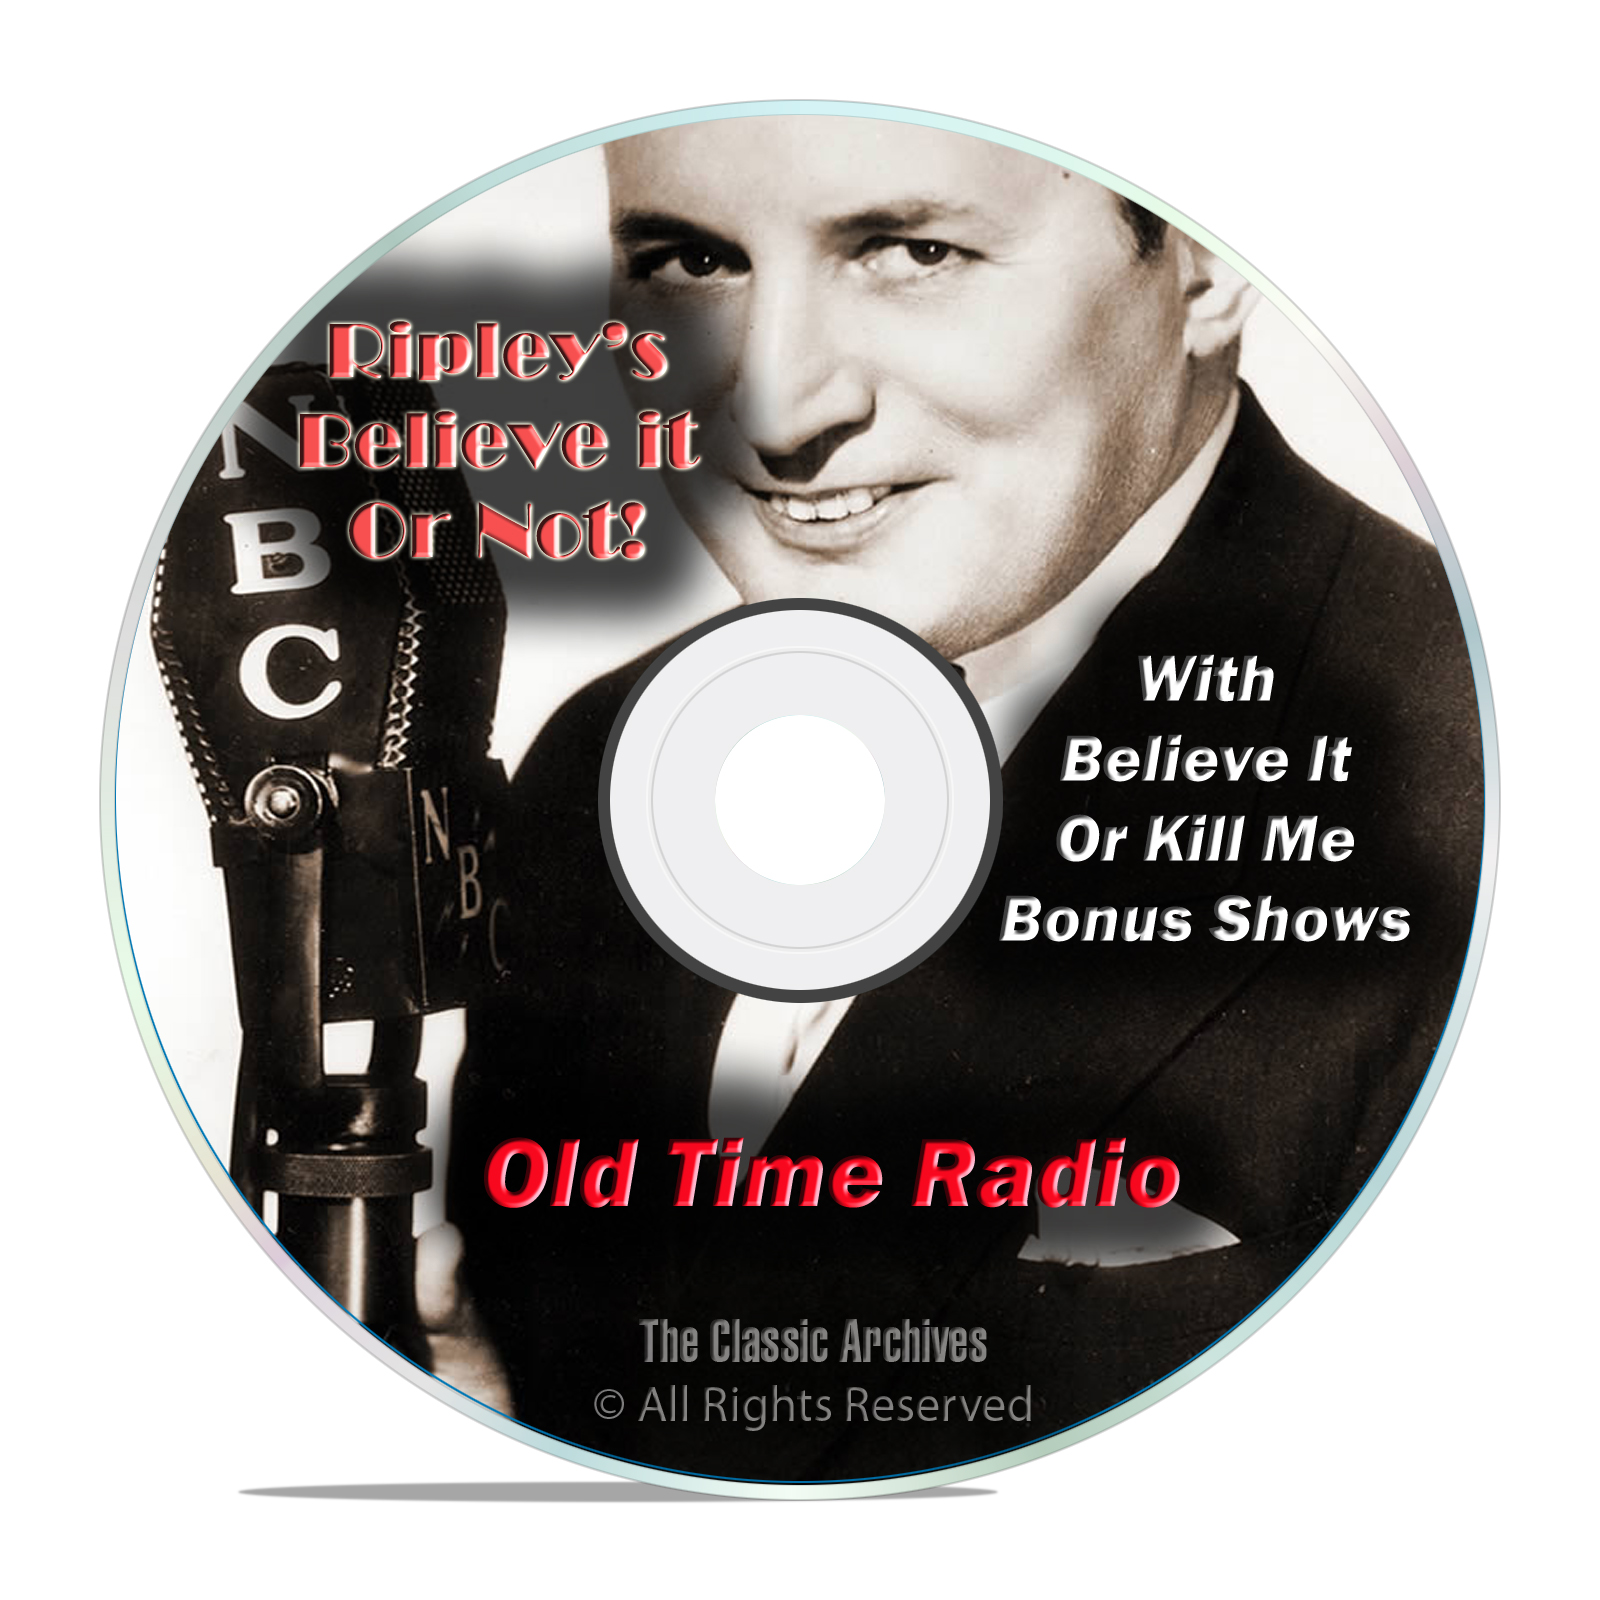 Ripley's Believe It Or Not!, 1,483 Old Time Radio Shows, Weird OTR, DVD